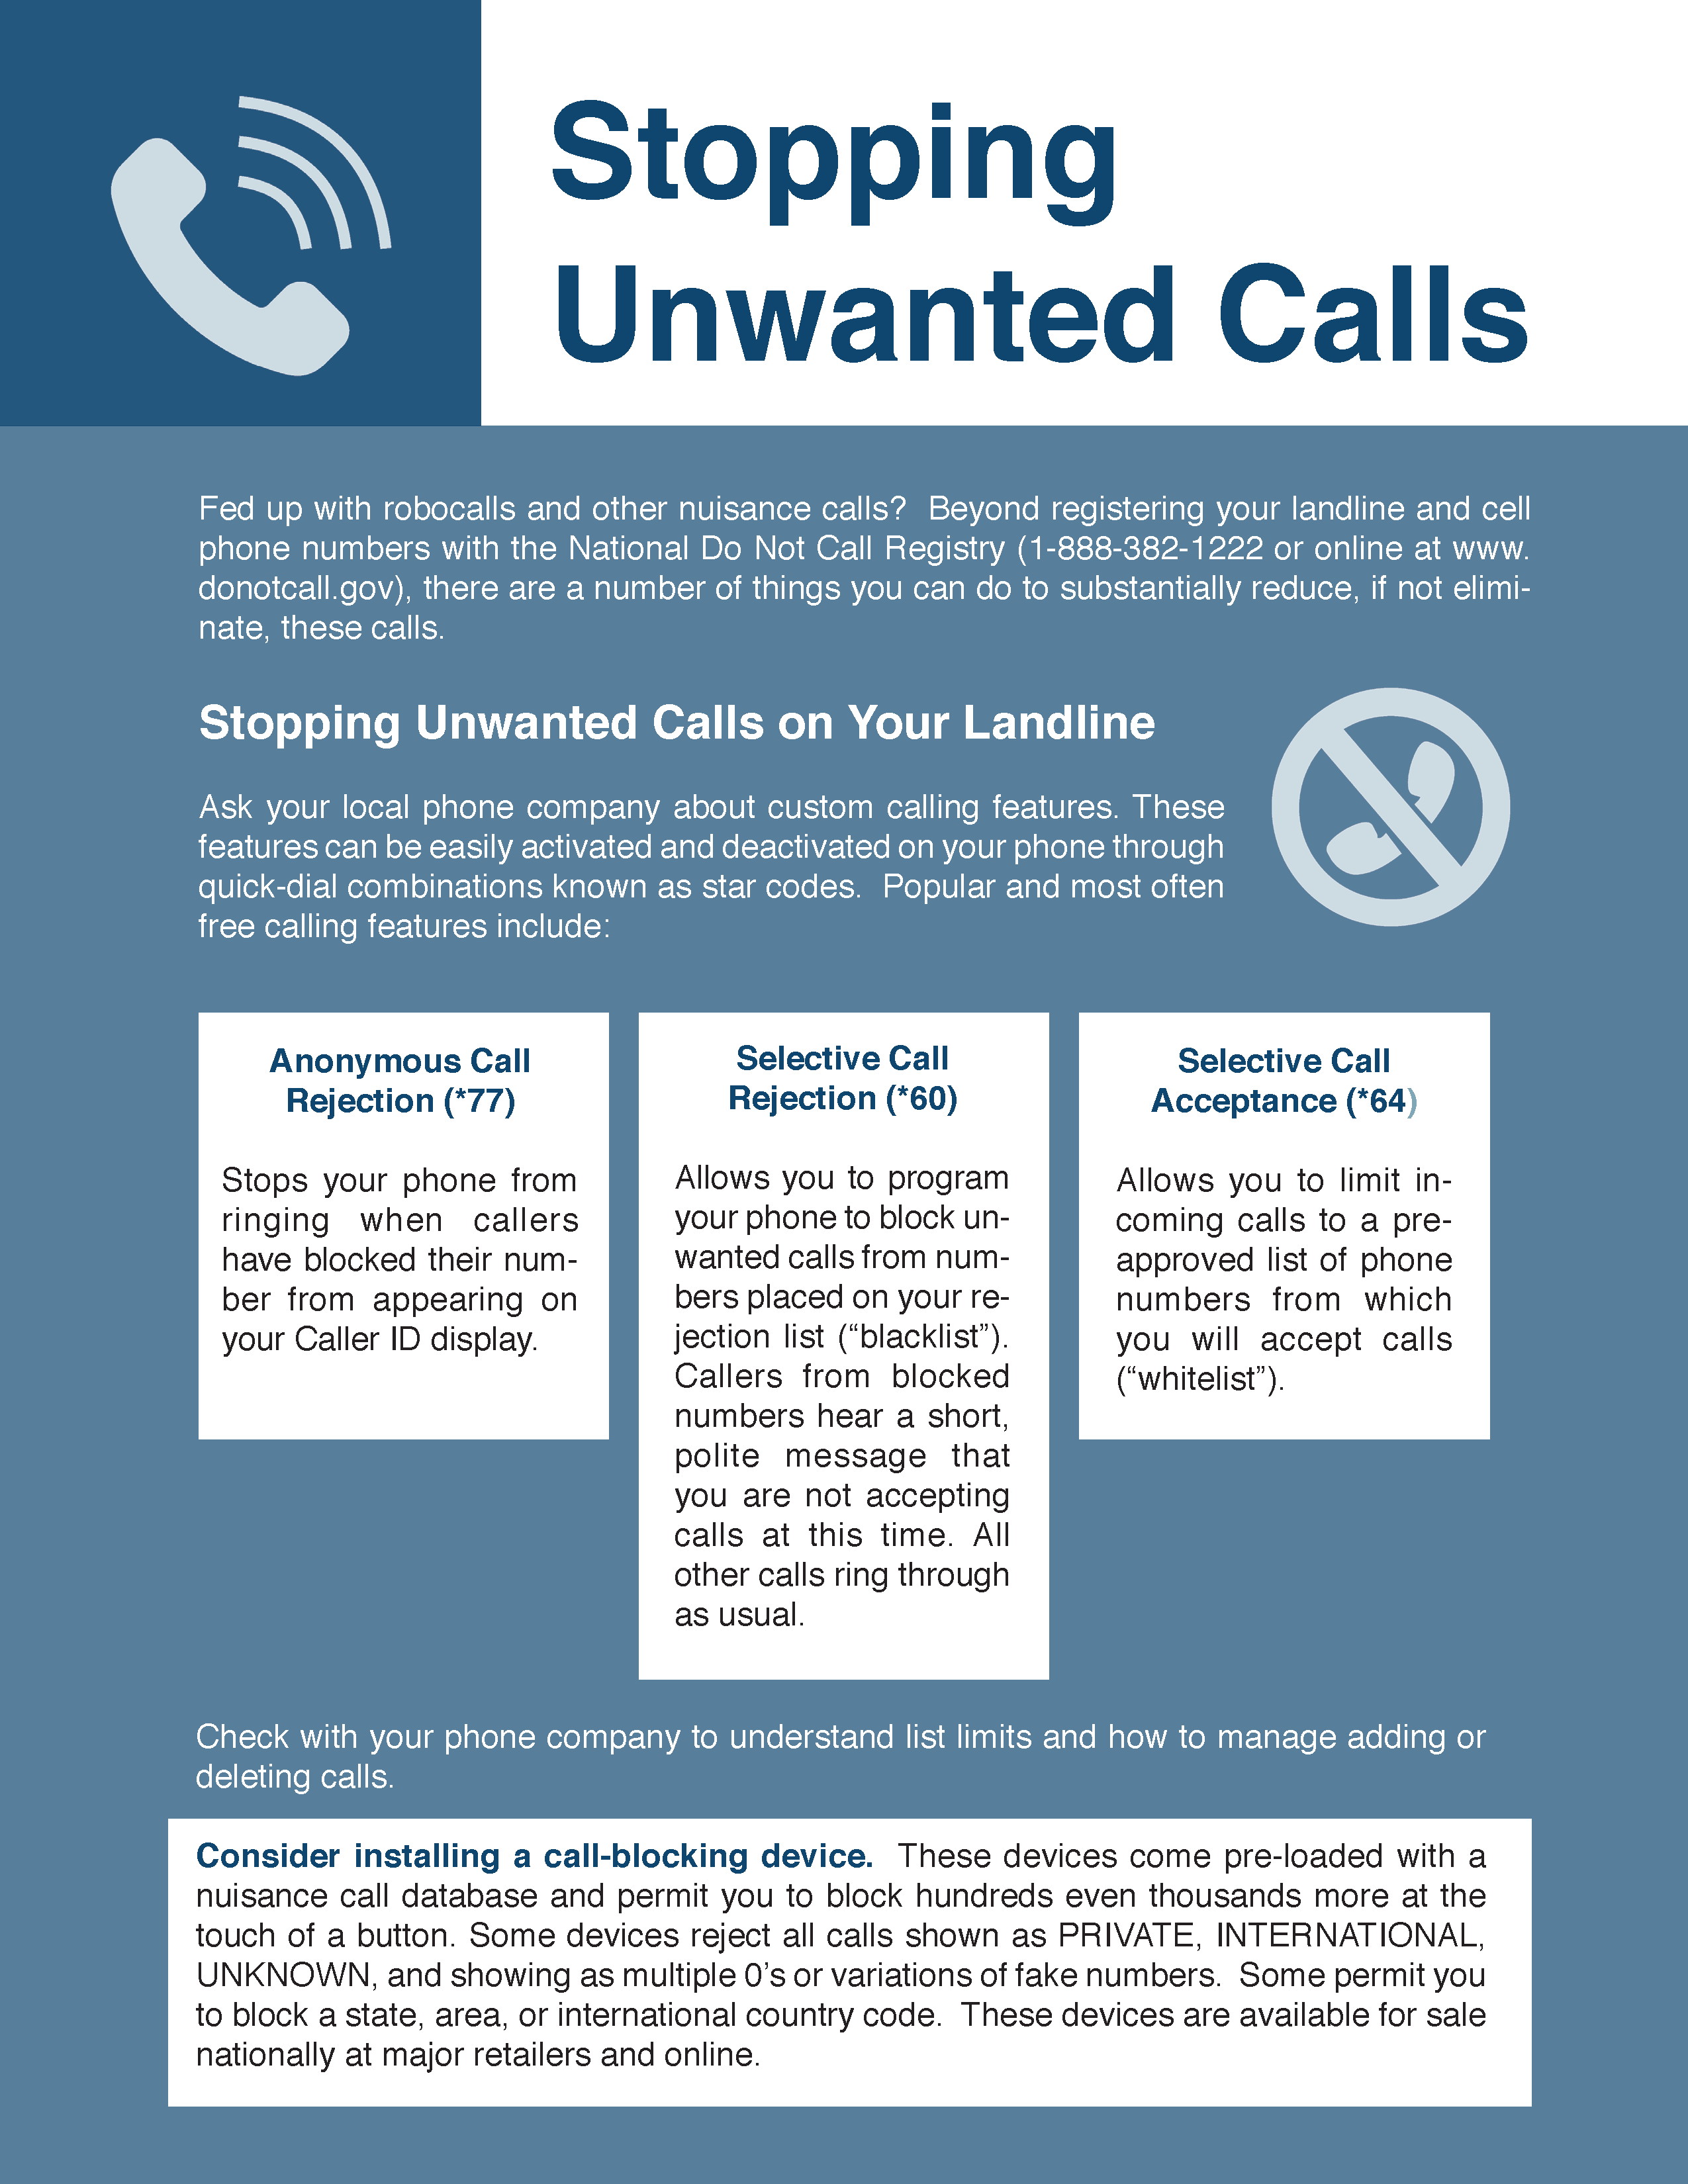 Stopping Unwanted Calls